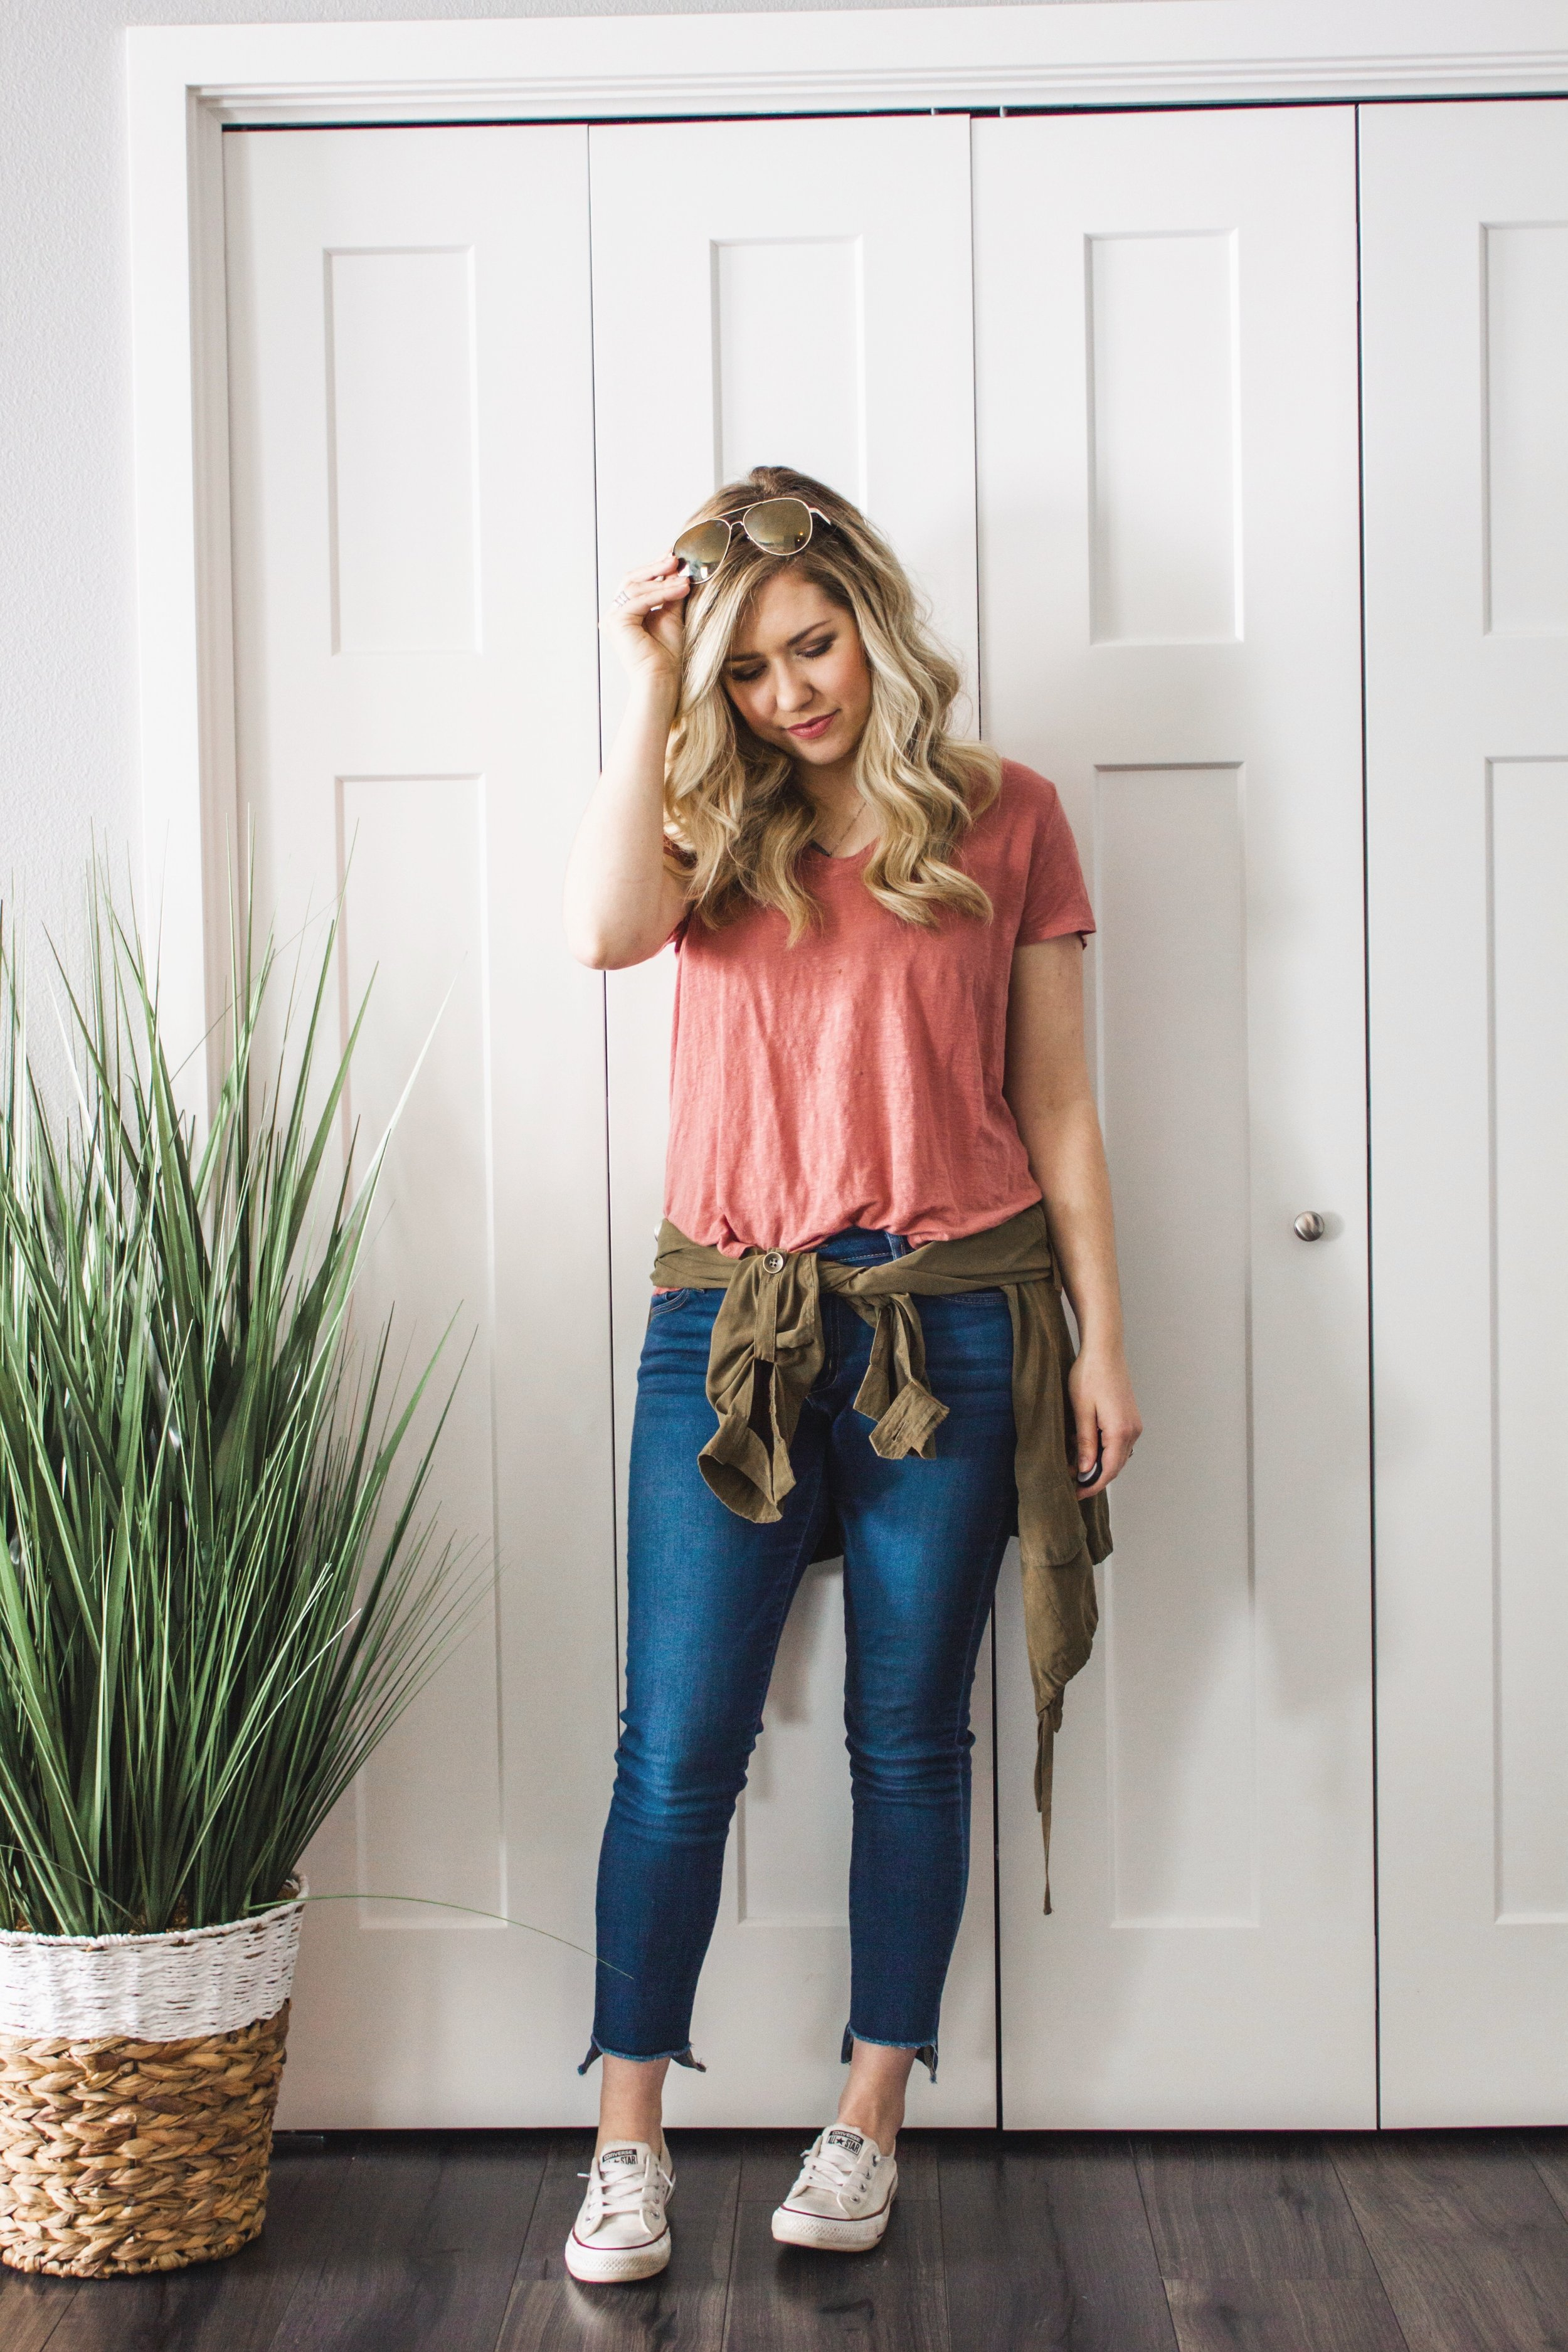 casual-jeans-and-tee-outfit-spring-01.JPG